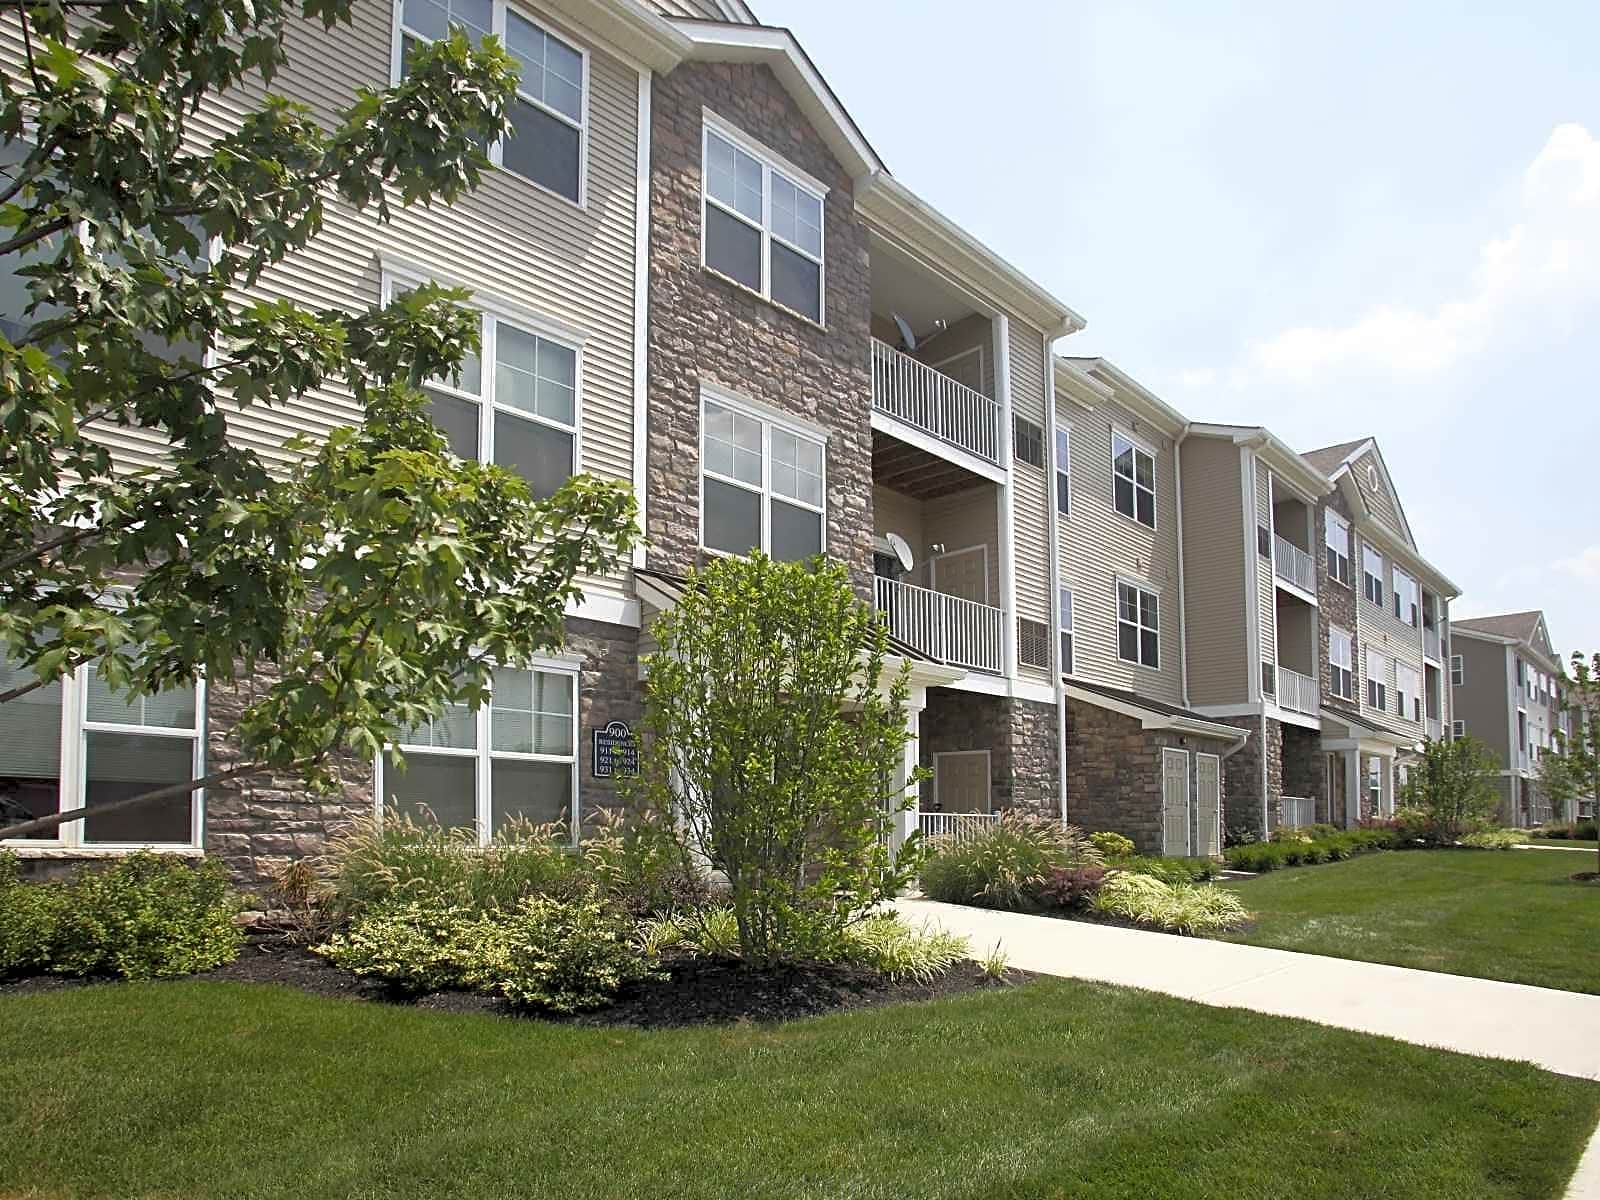 Pet Friendly Apartments In Bethlehem Pa Pet Friendly Houses For Rent